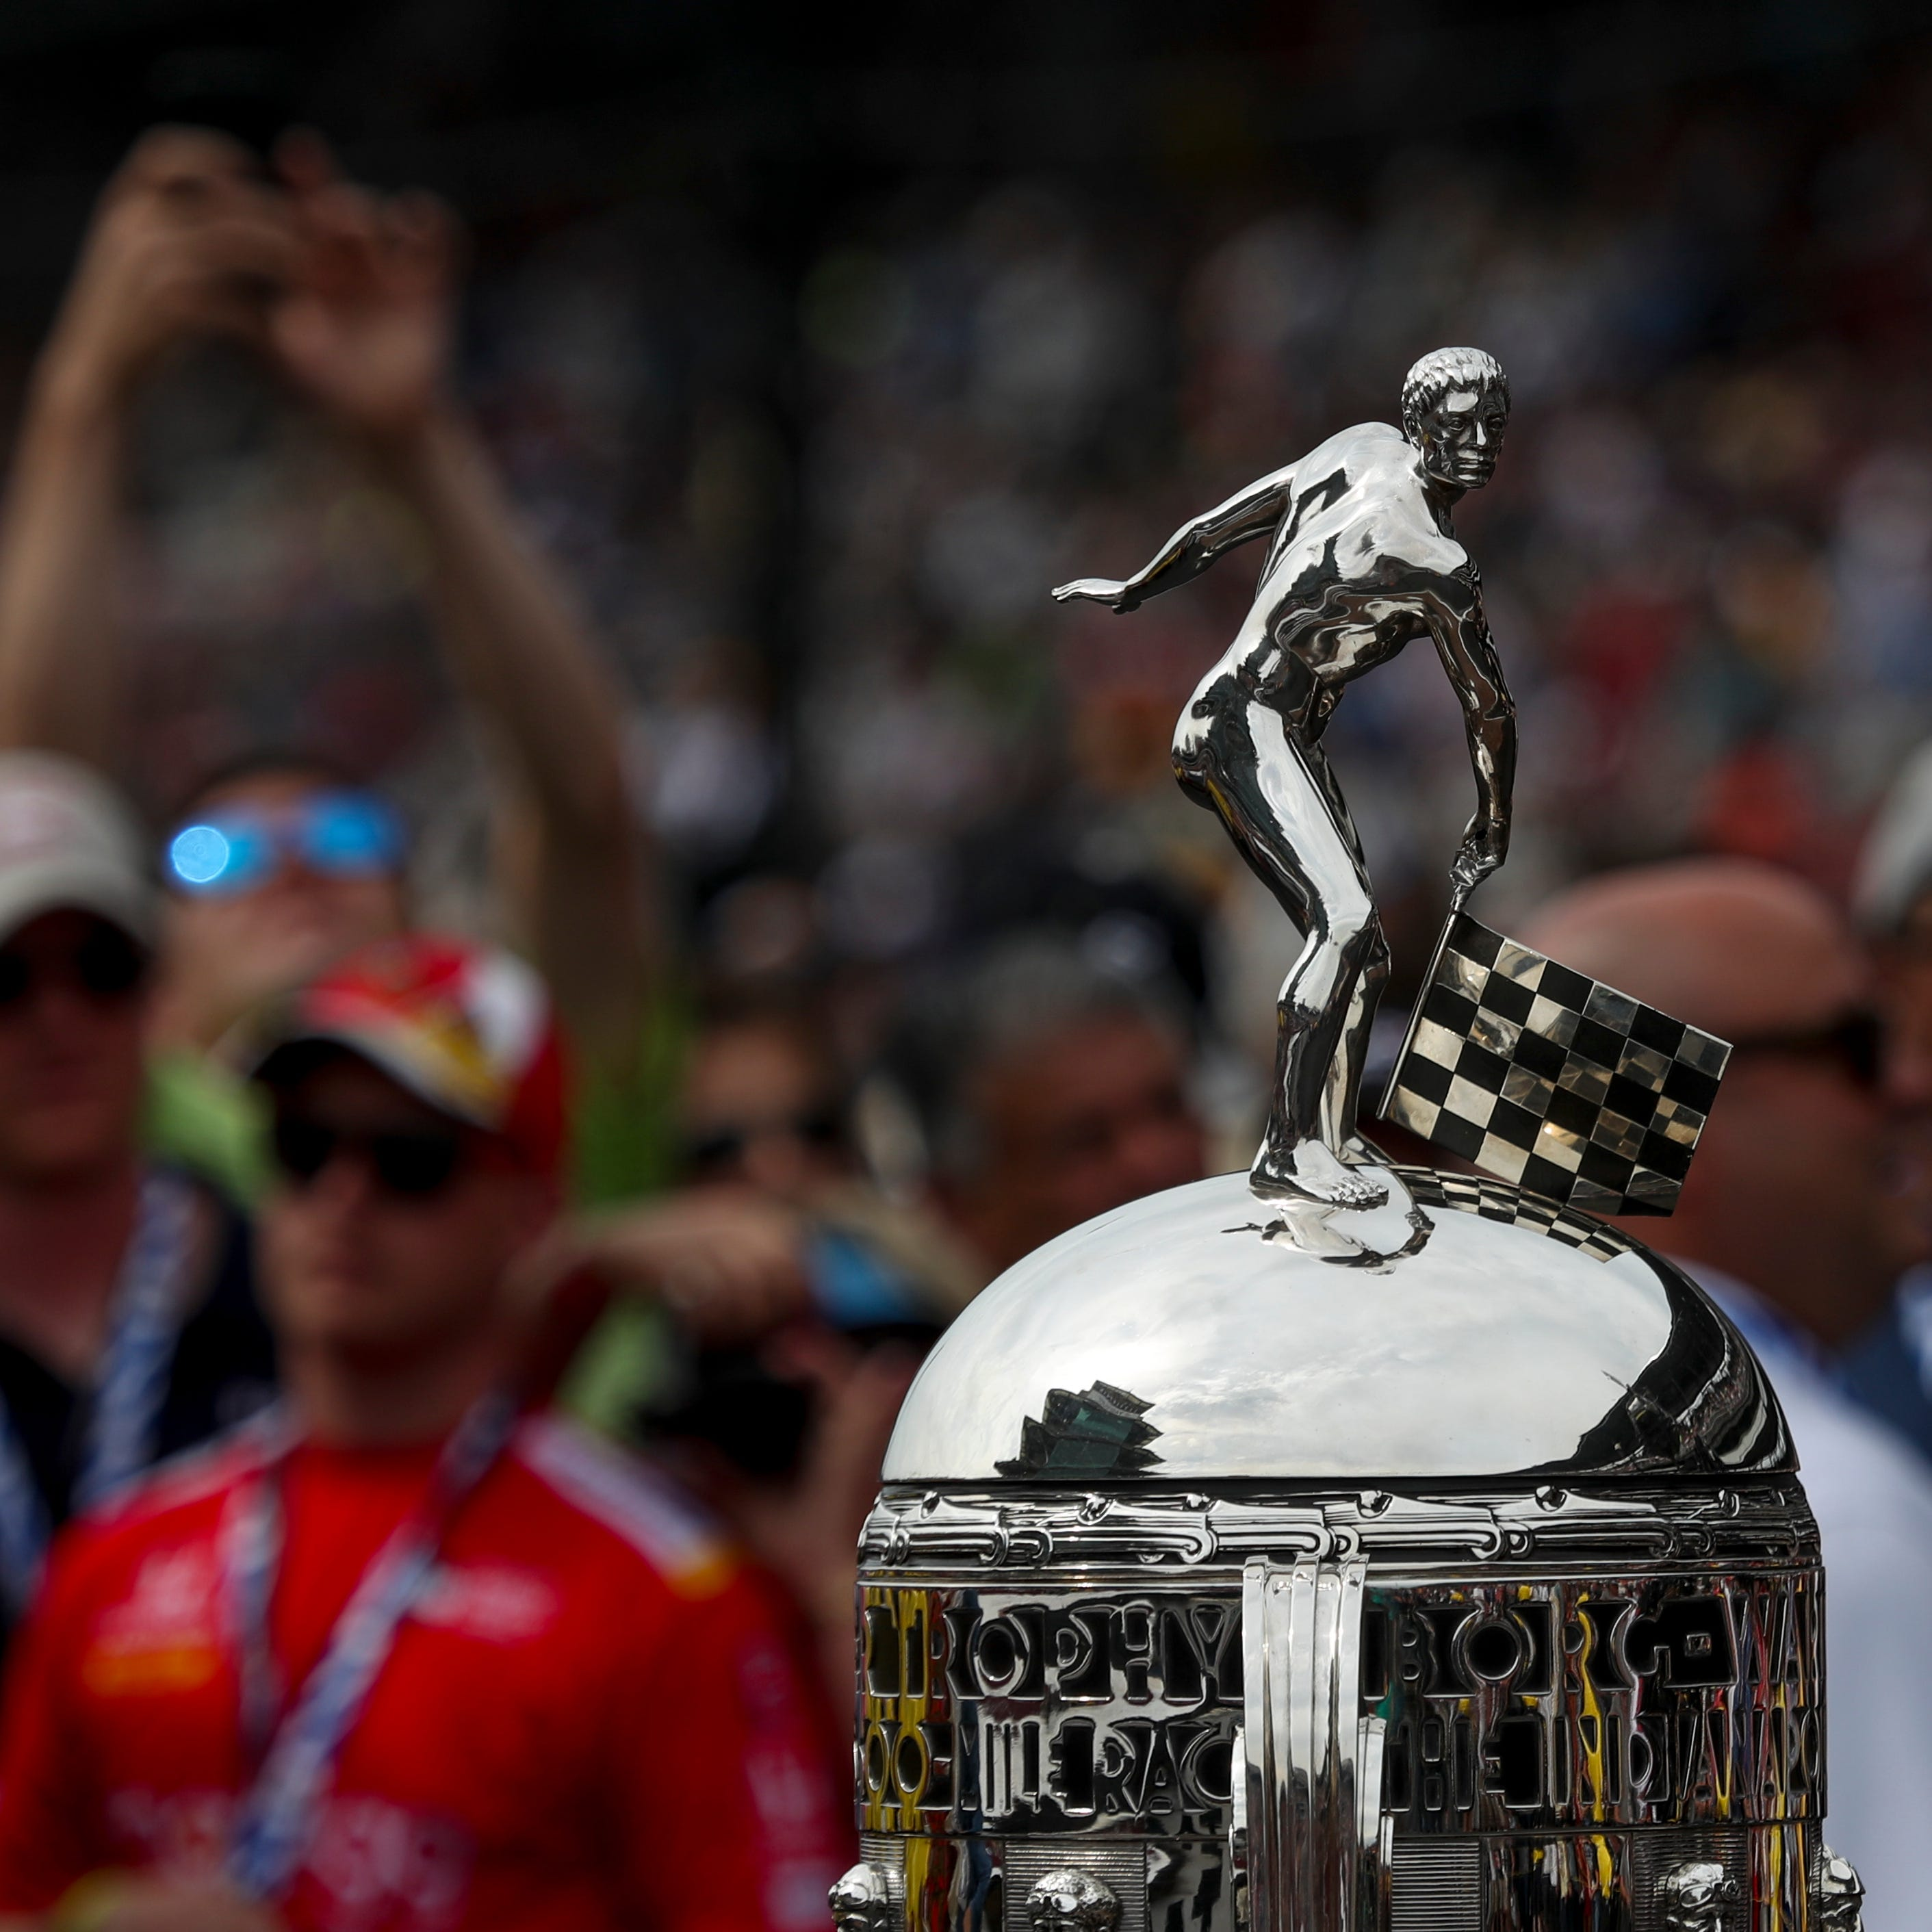 Indy 500 blackout? Well, seems there's an easy work-around for Indy-area viewers